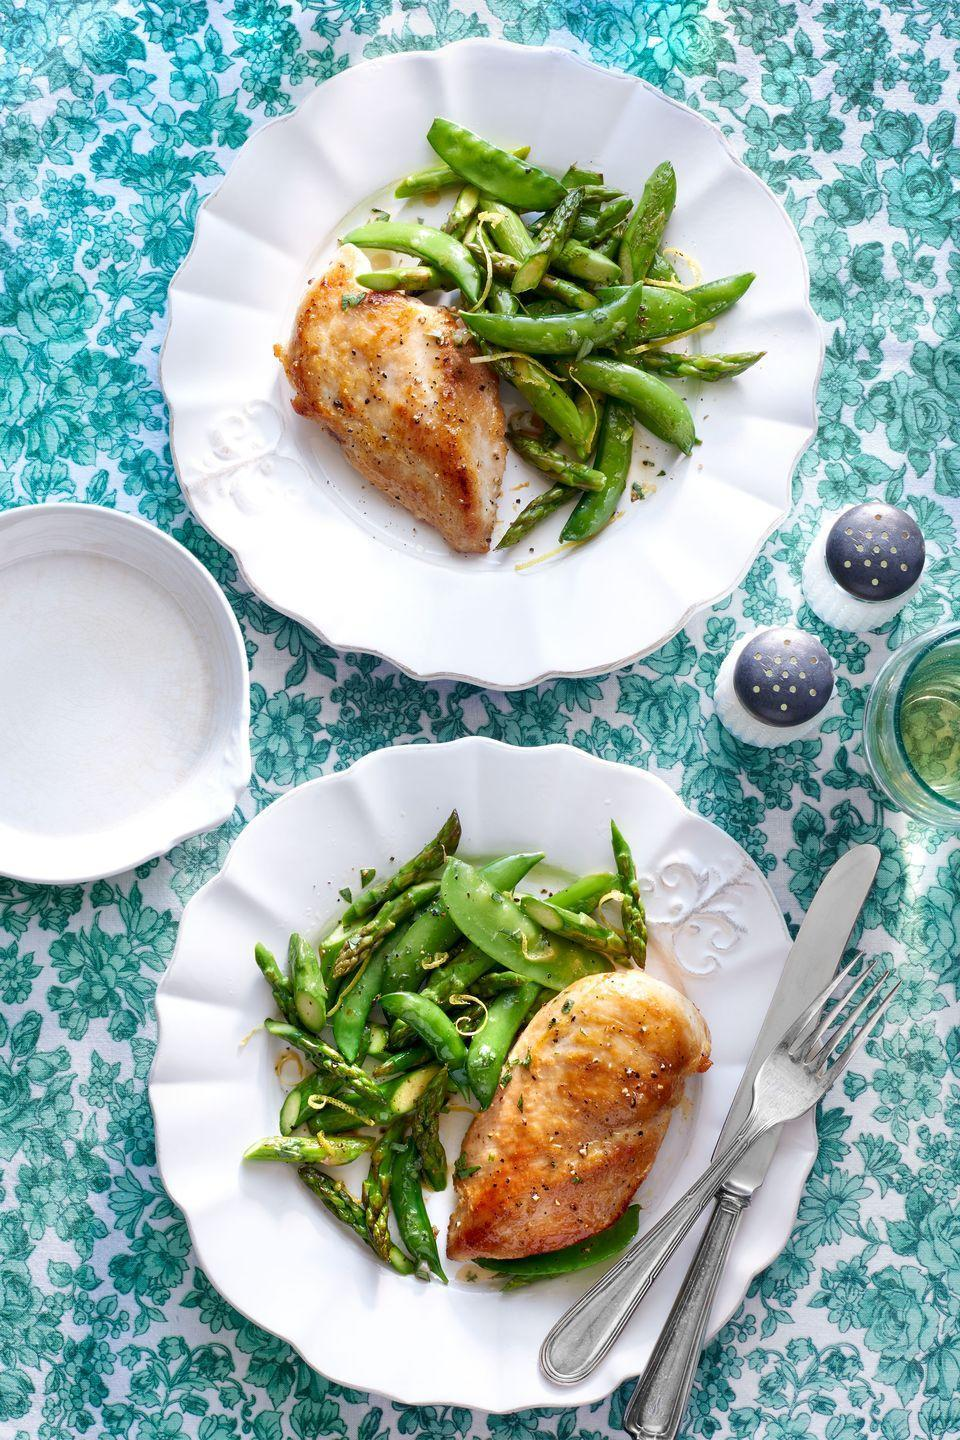 "<p>Fresh spring vegetables are an easy (and healthy!) way to upgrade the classic chicken dinner.</p><p><strong><a href=""https://www.countryliving.com/food-drinks/recipes/a276/skillet-chicken-spring-vegetables-recipe-clx0315/"" rel=""nofollow noopener"" target=""_blank"" data-ylk=""slk:Get the recipe"" class=""link rapid-noclick-resp""> Get the recipe</a>.</strong></p>"